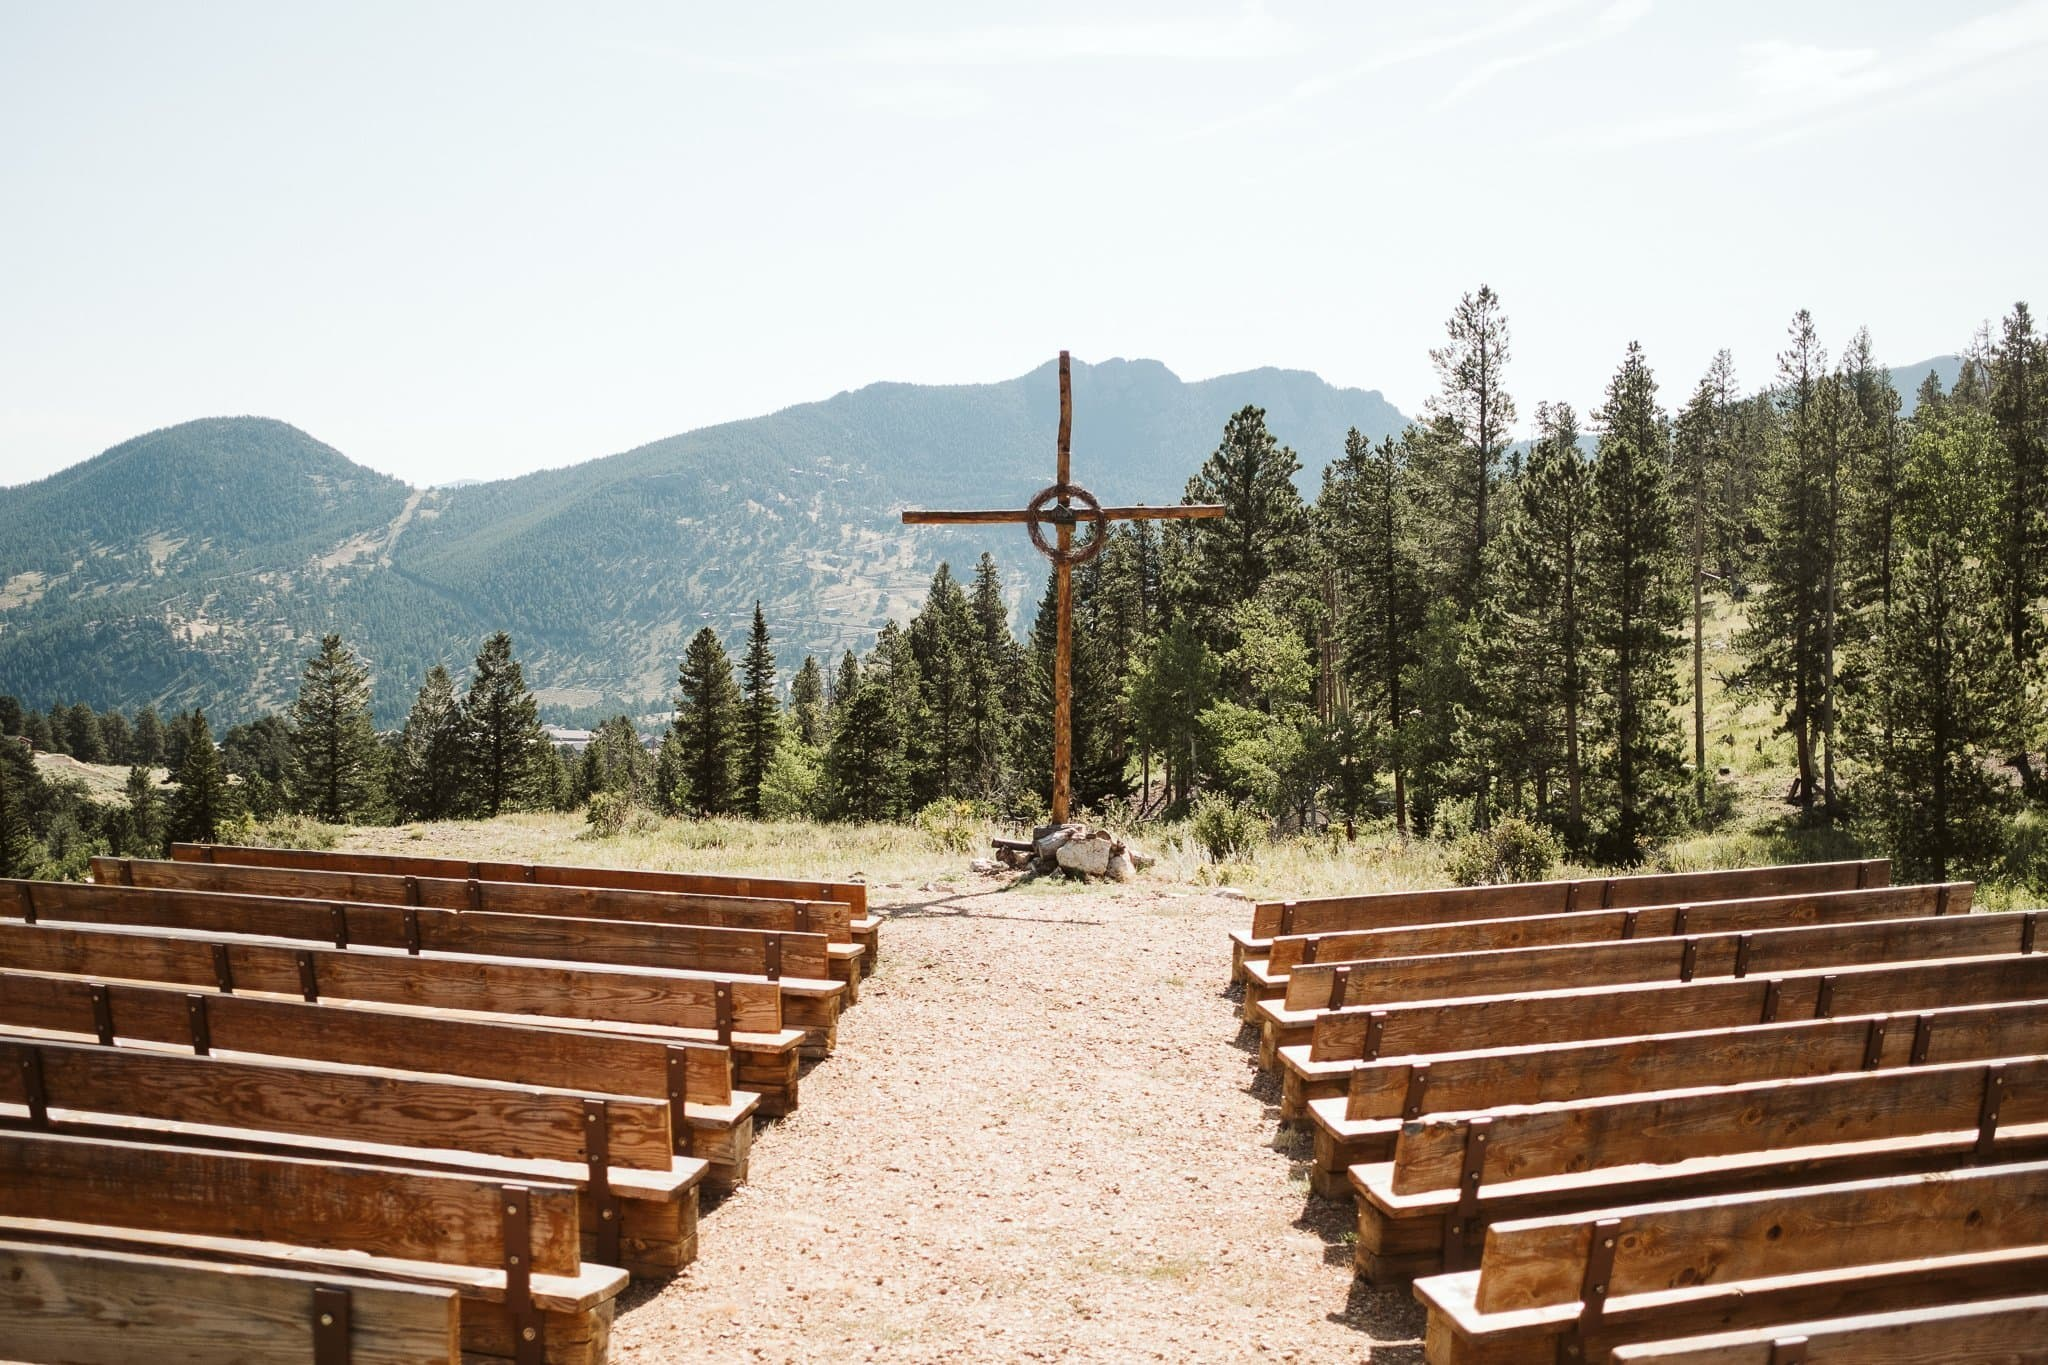 YMCA of the Rockies Estes Park wedding venue, outdoor ceremony venue with cross